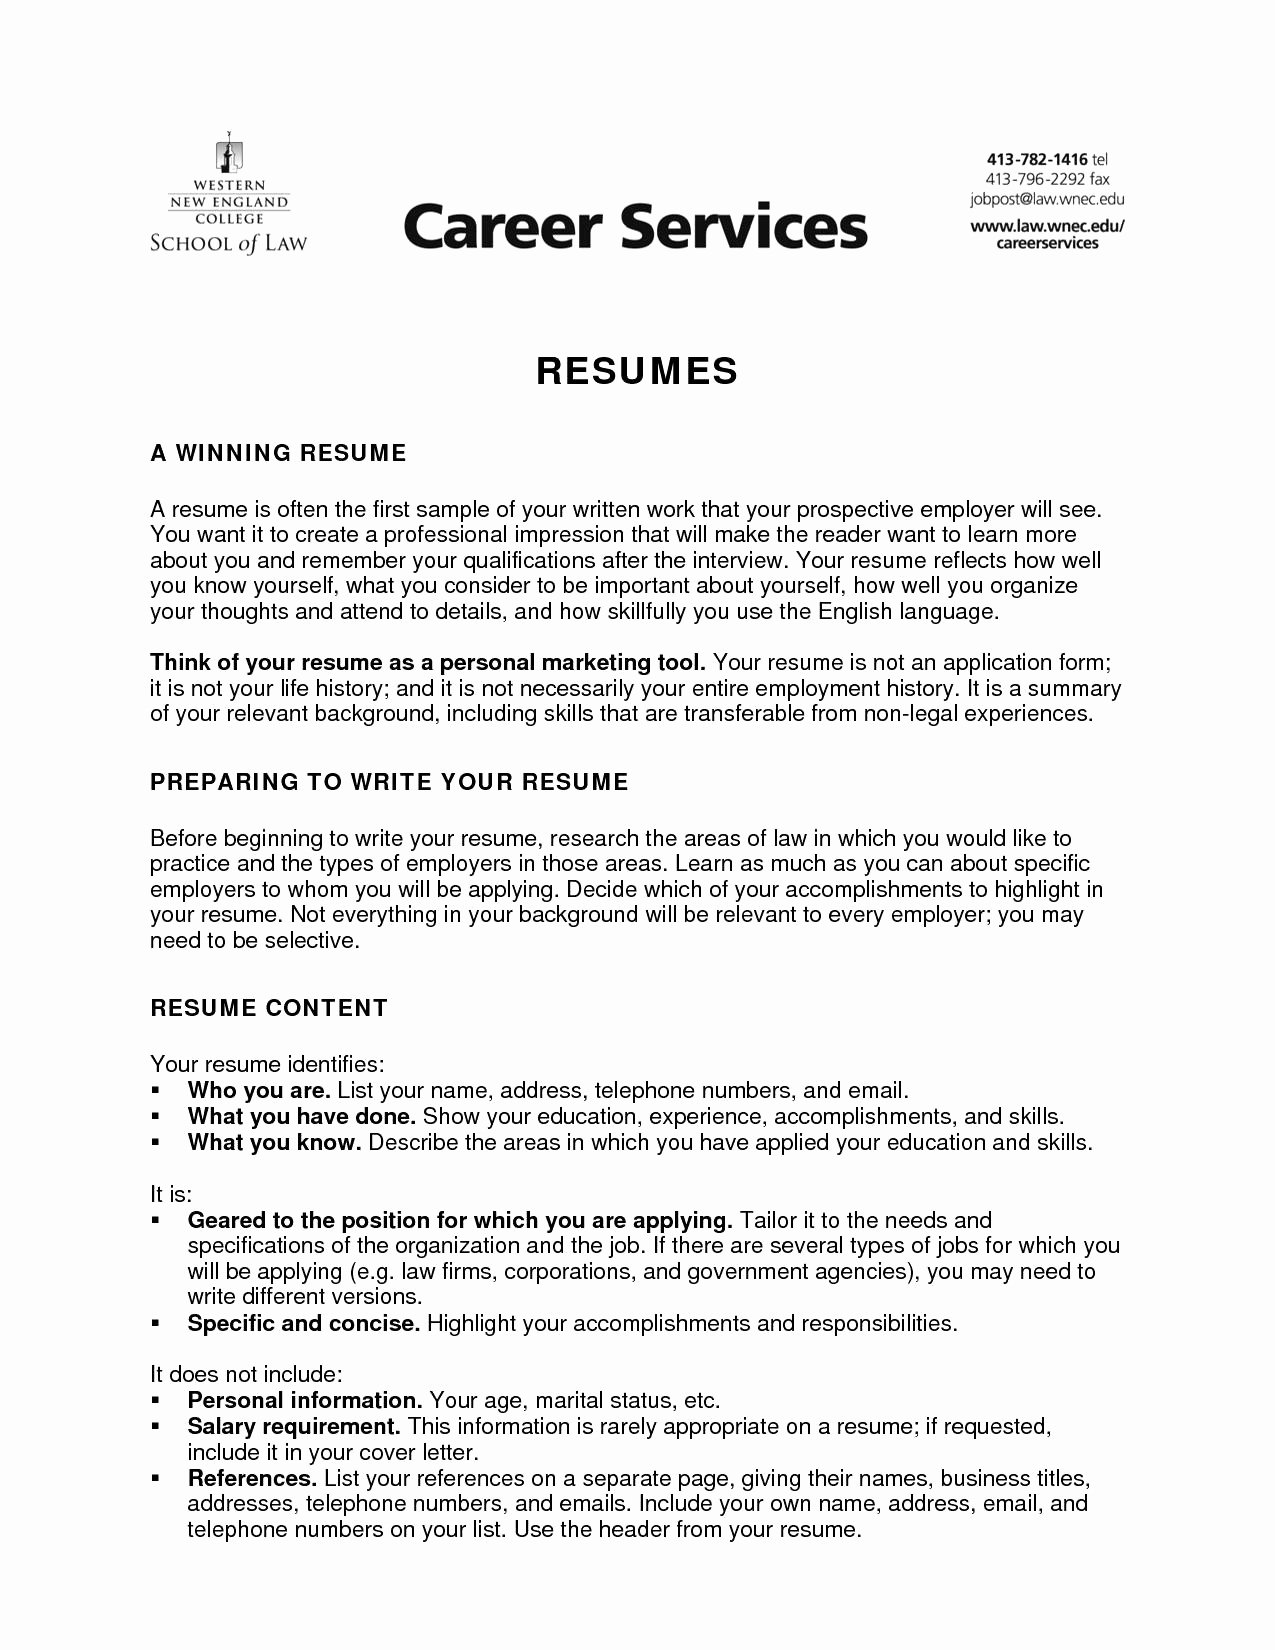 Sample Resume Letter for Call Center Agent without